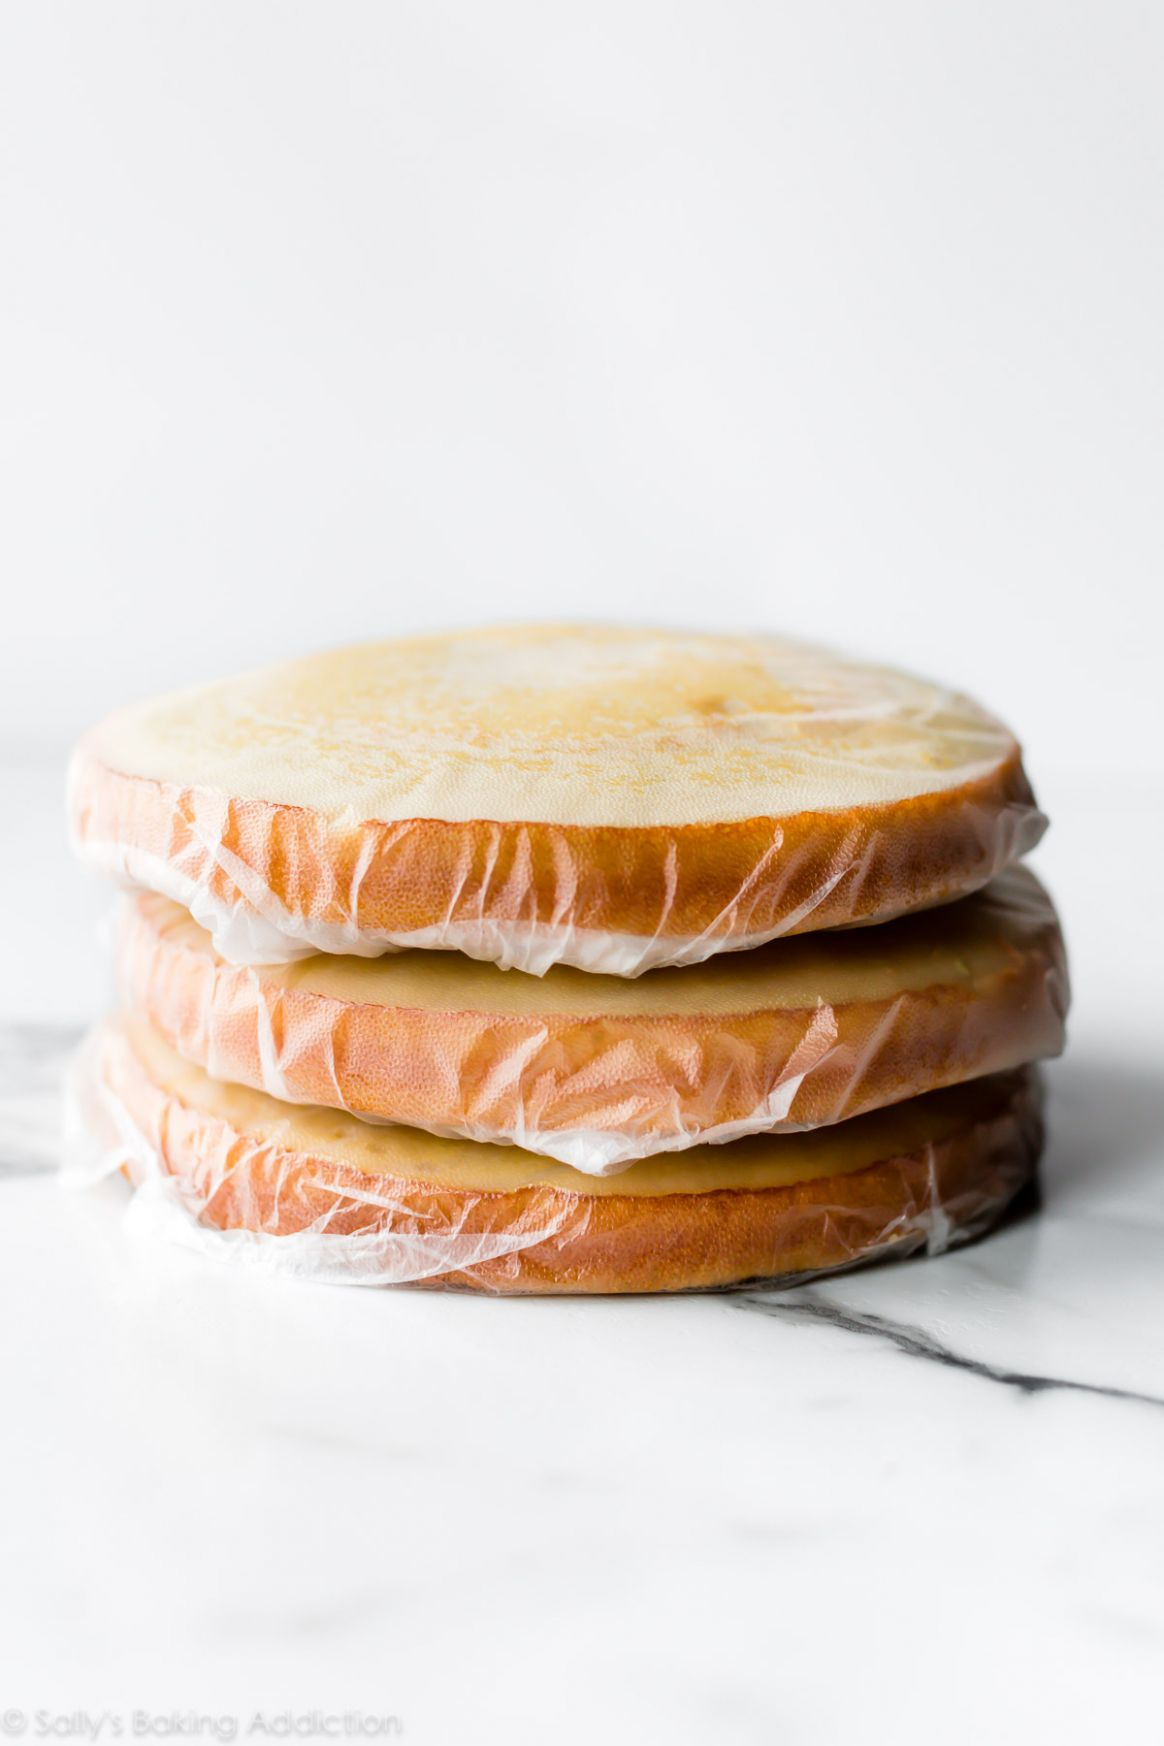 How to Freeze Cakes - Cake Recipes You Can Freeze